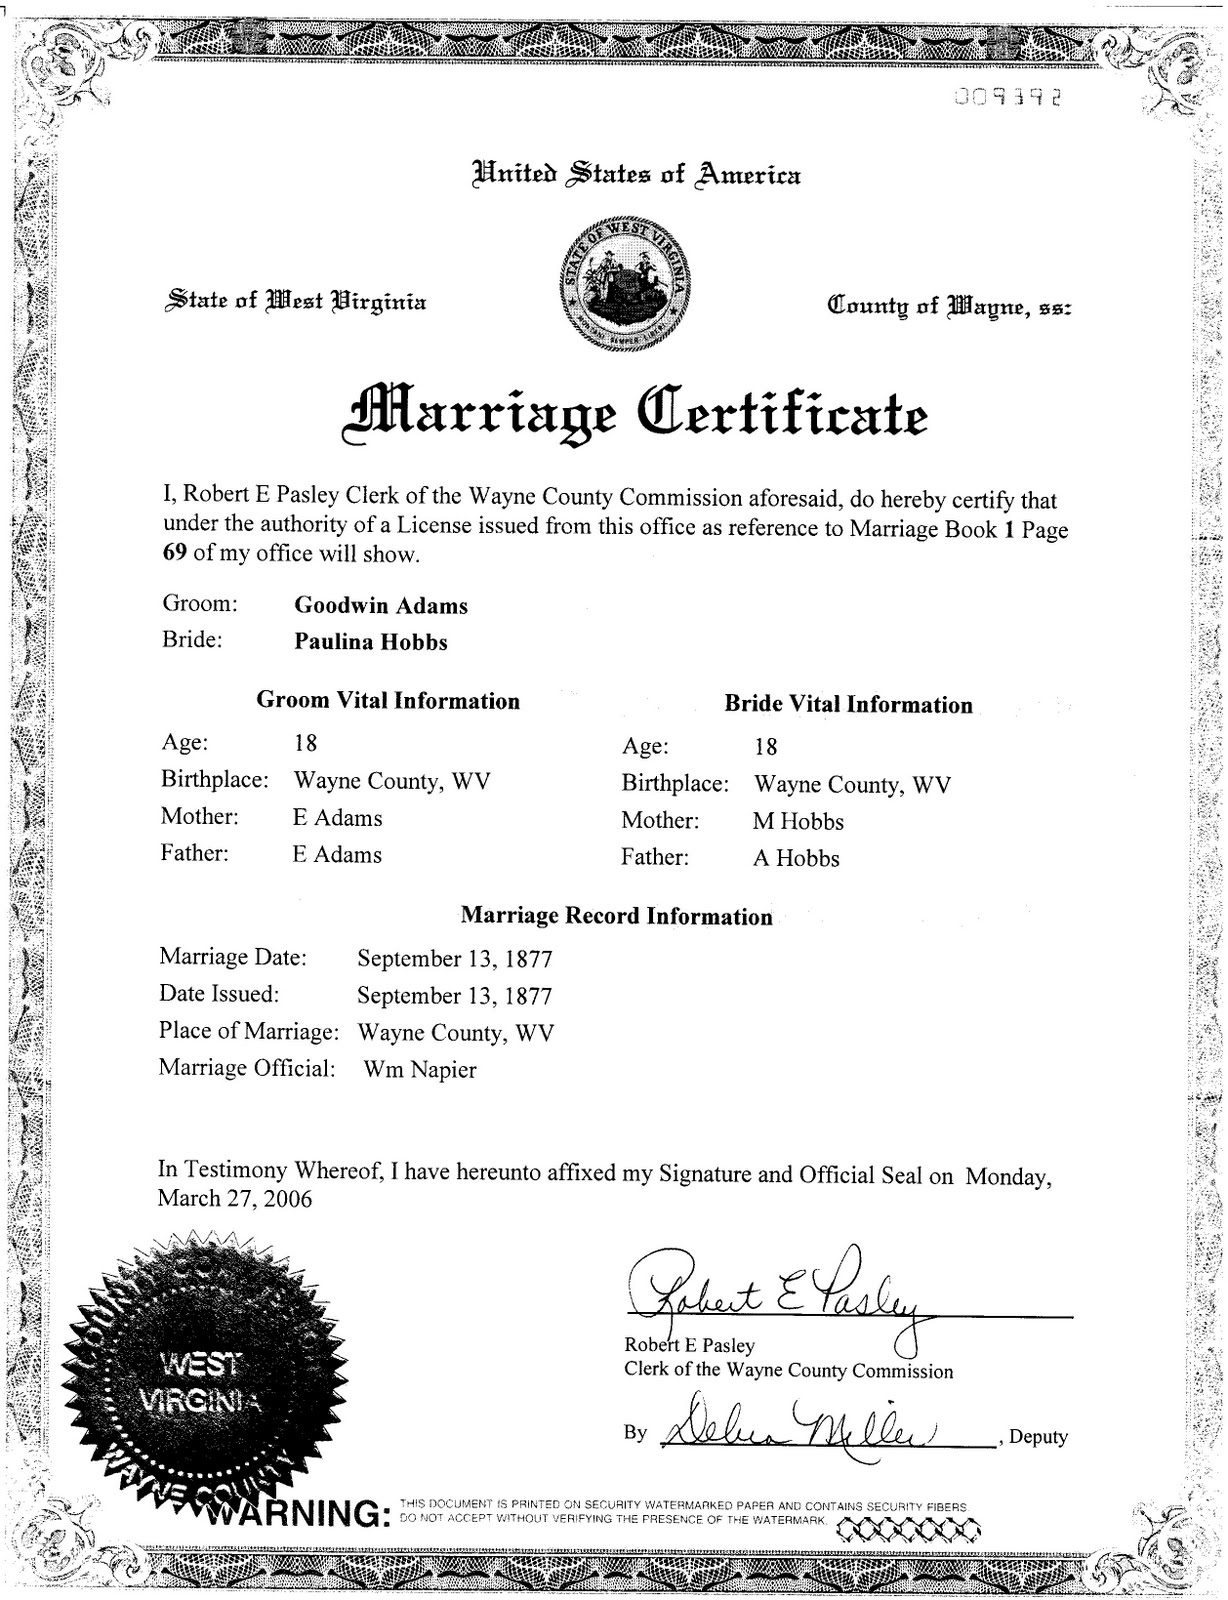 Posies genealogy marriage certificate of goodwin adams and paulina hobbs 1betcityfo Images